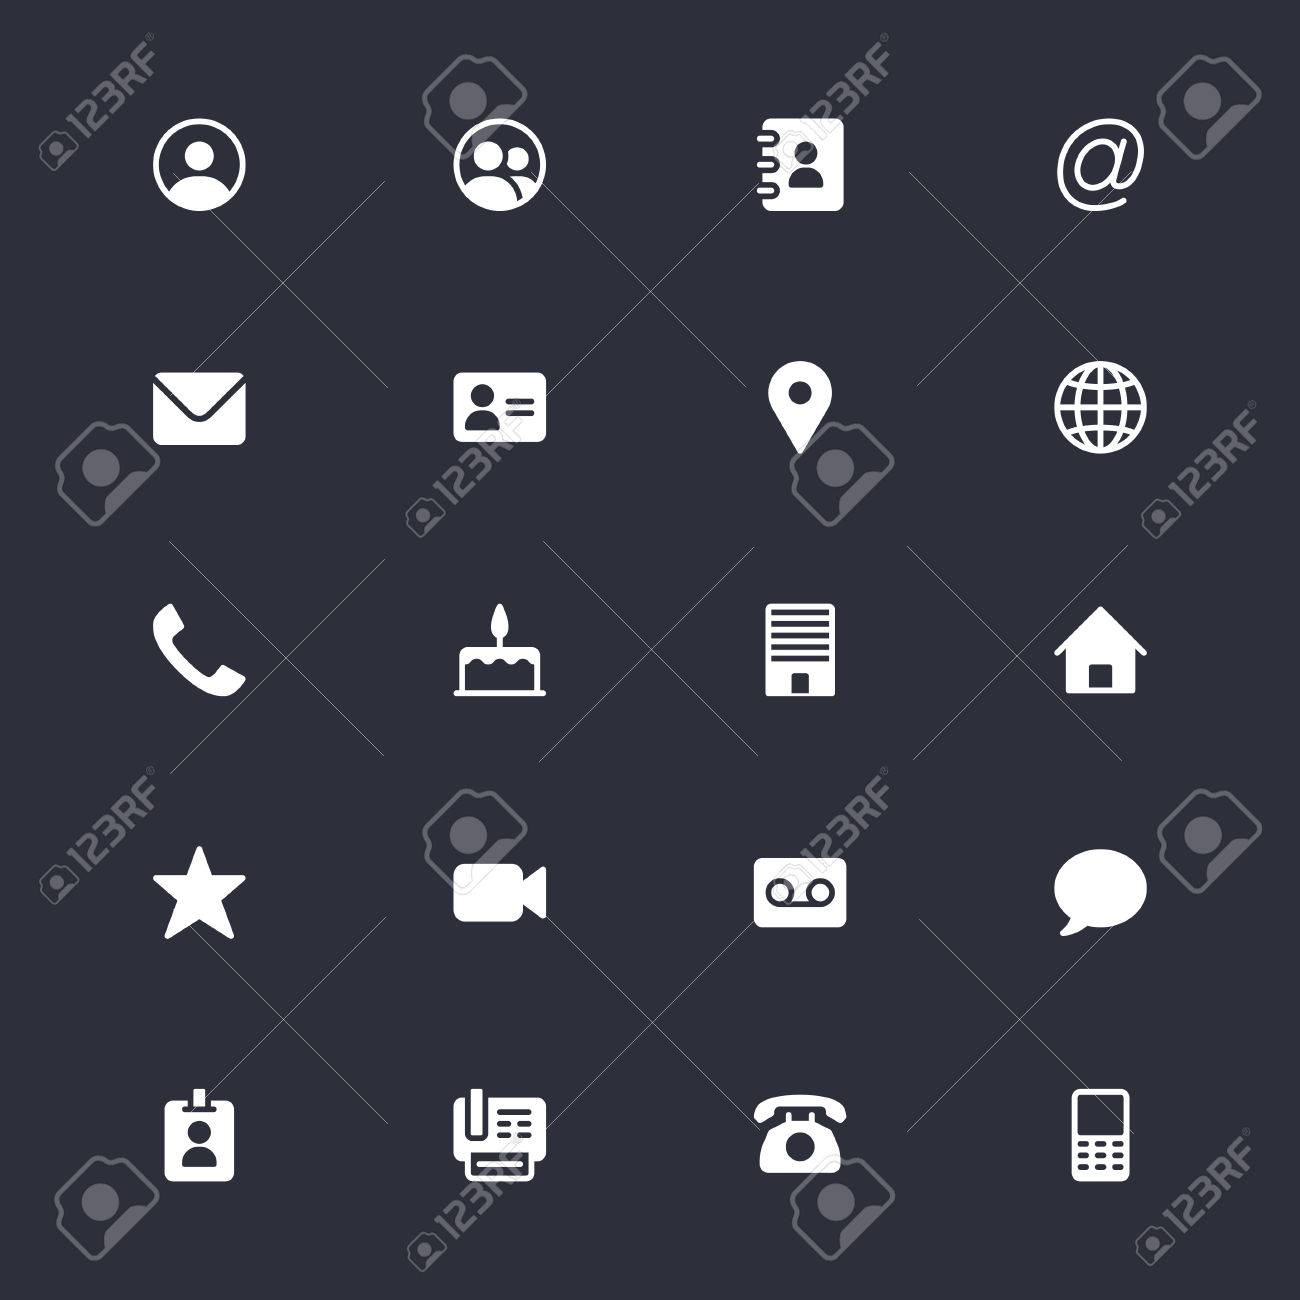 Contact simple icons - 58105469